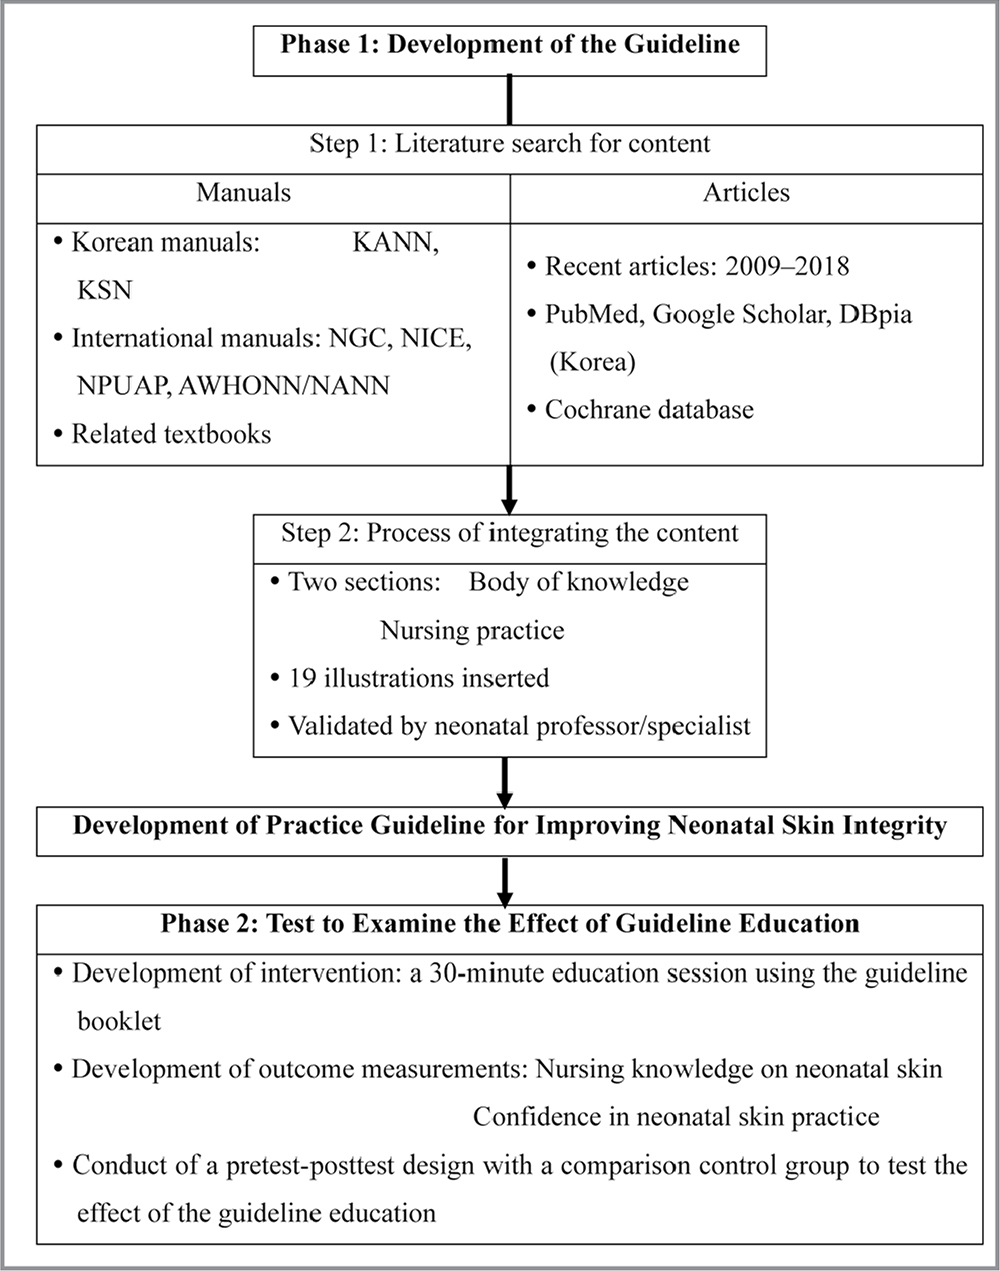 Flow chart showing the study process. Note. KANN = Korean Association of Neonatal Nurses; KSN = Korean Society of Neonatology; NGC = Neonatal Guideline Clearinghouse; NICE = National Institute for Health and Care Excellence; NPUAP = National Pressure Ulcer Advisory Panel; AWHONN/NANN = Association of Women's Health, Obstetric and Neonatal Nurses.